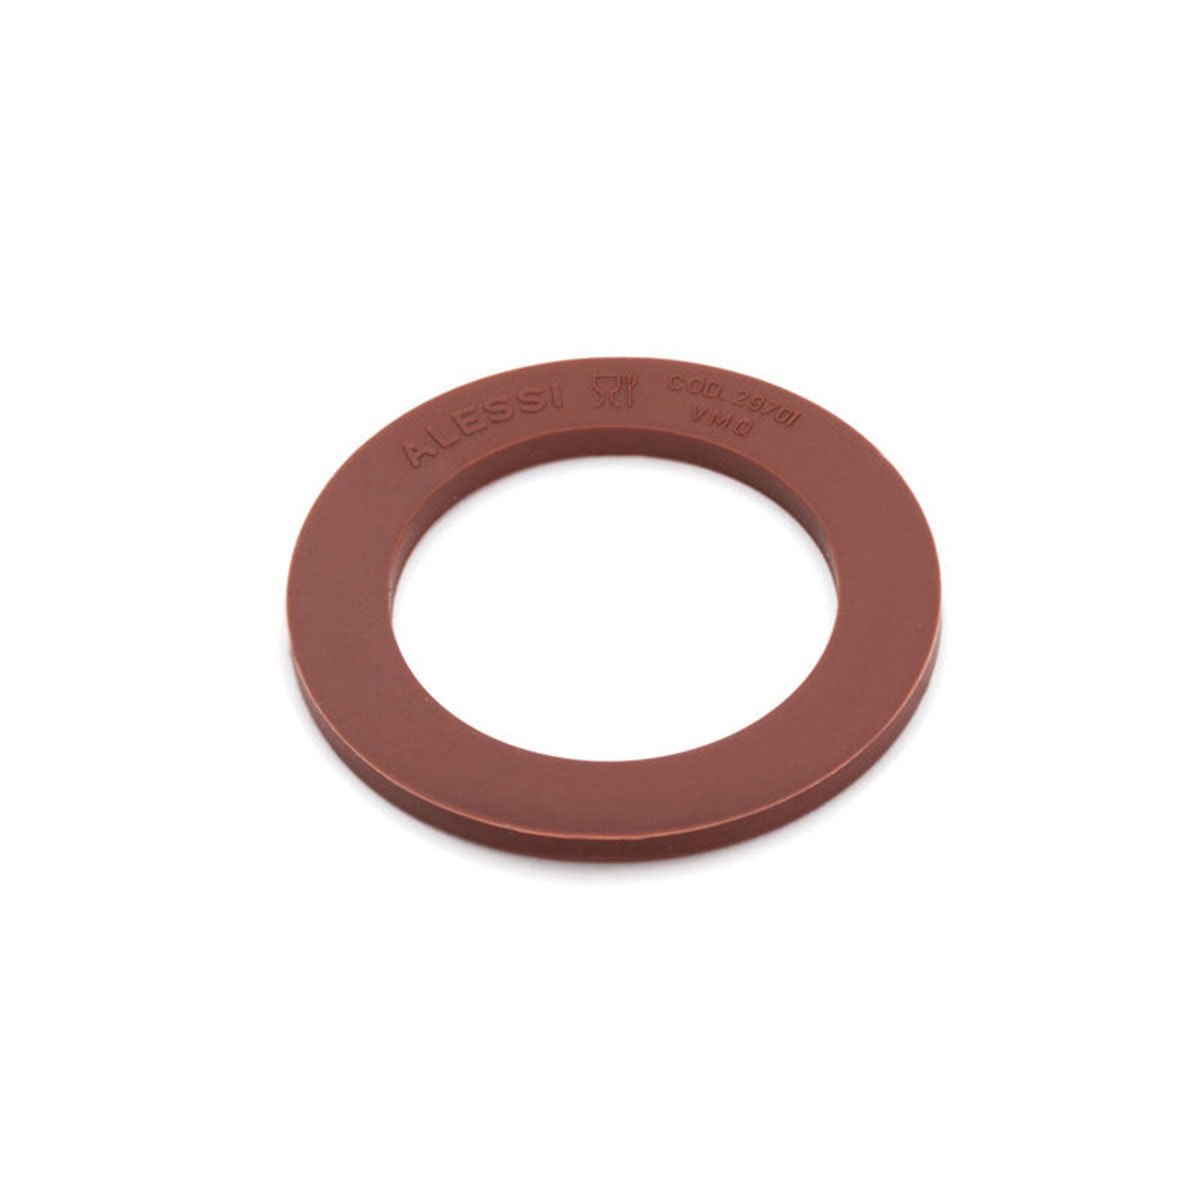 Alessi Replacement Washer for 3-cup Espresso Makers